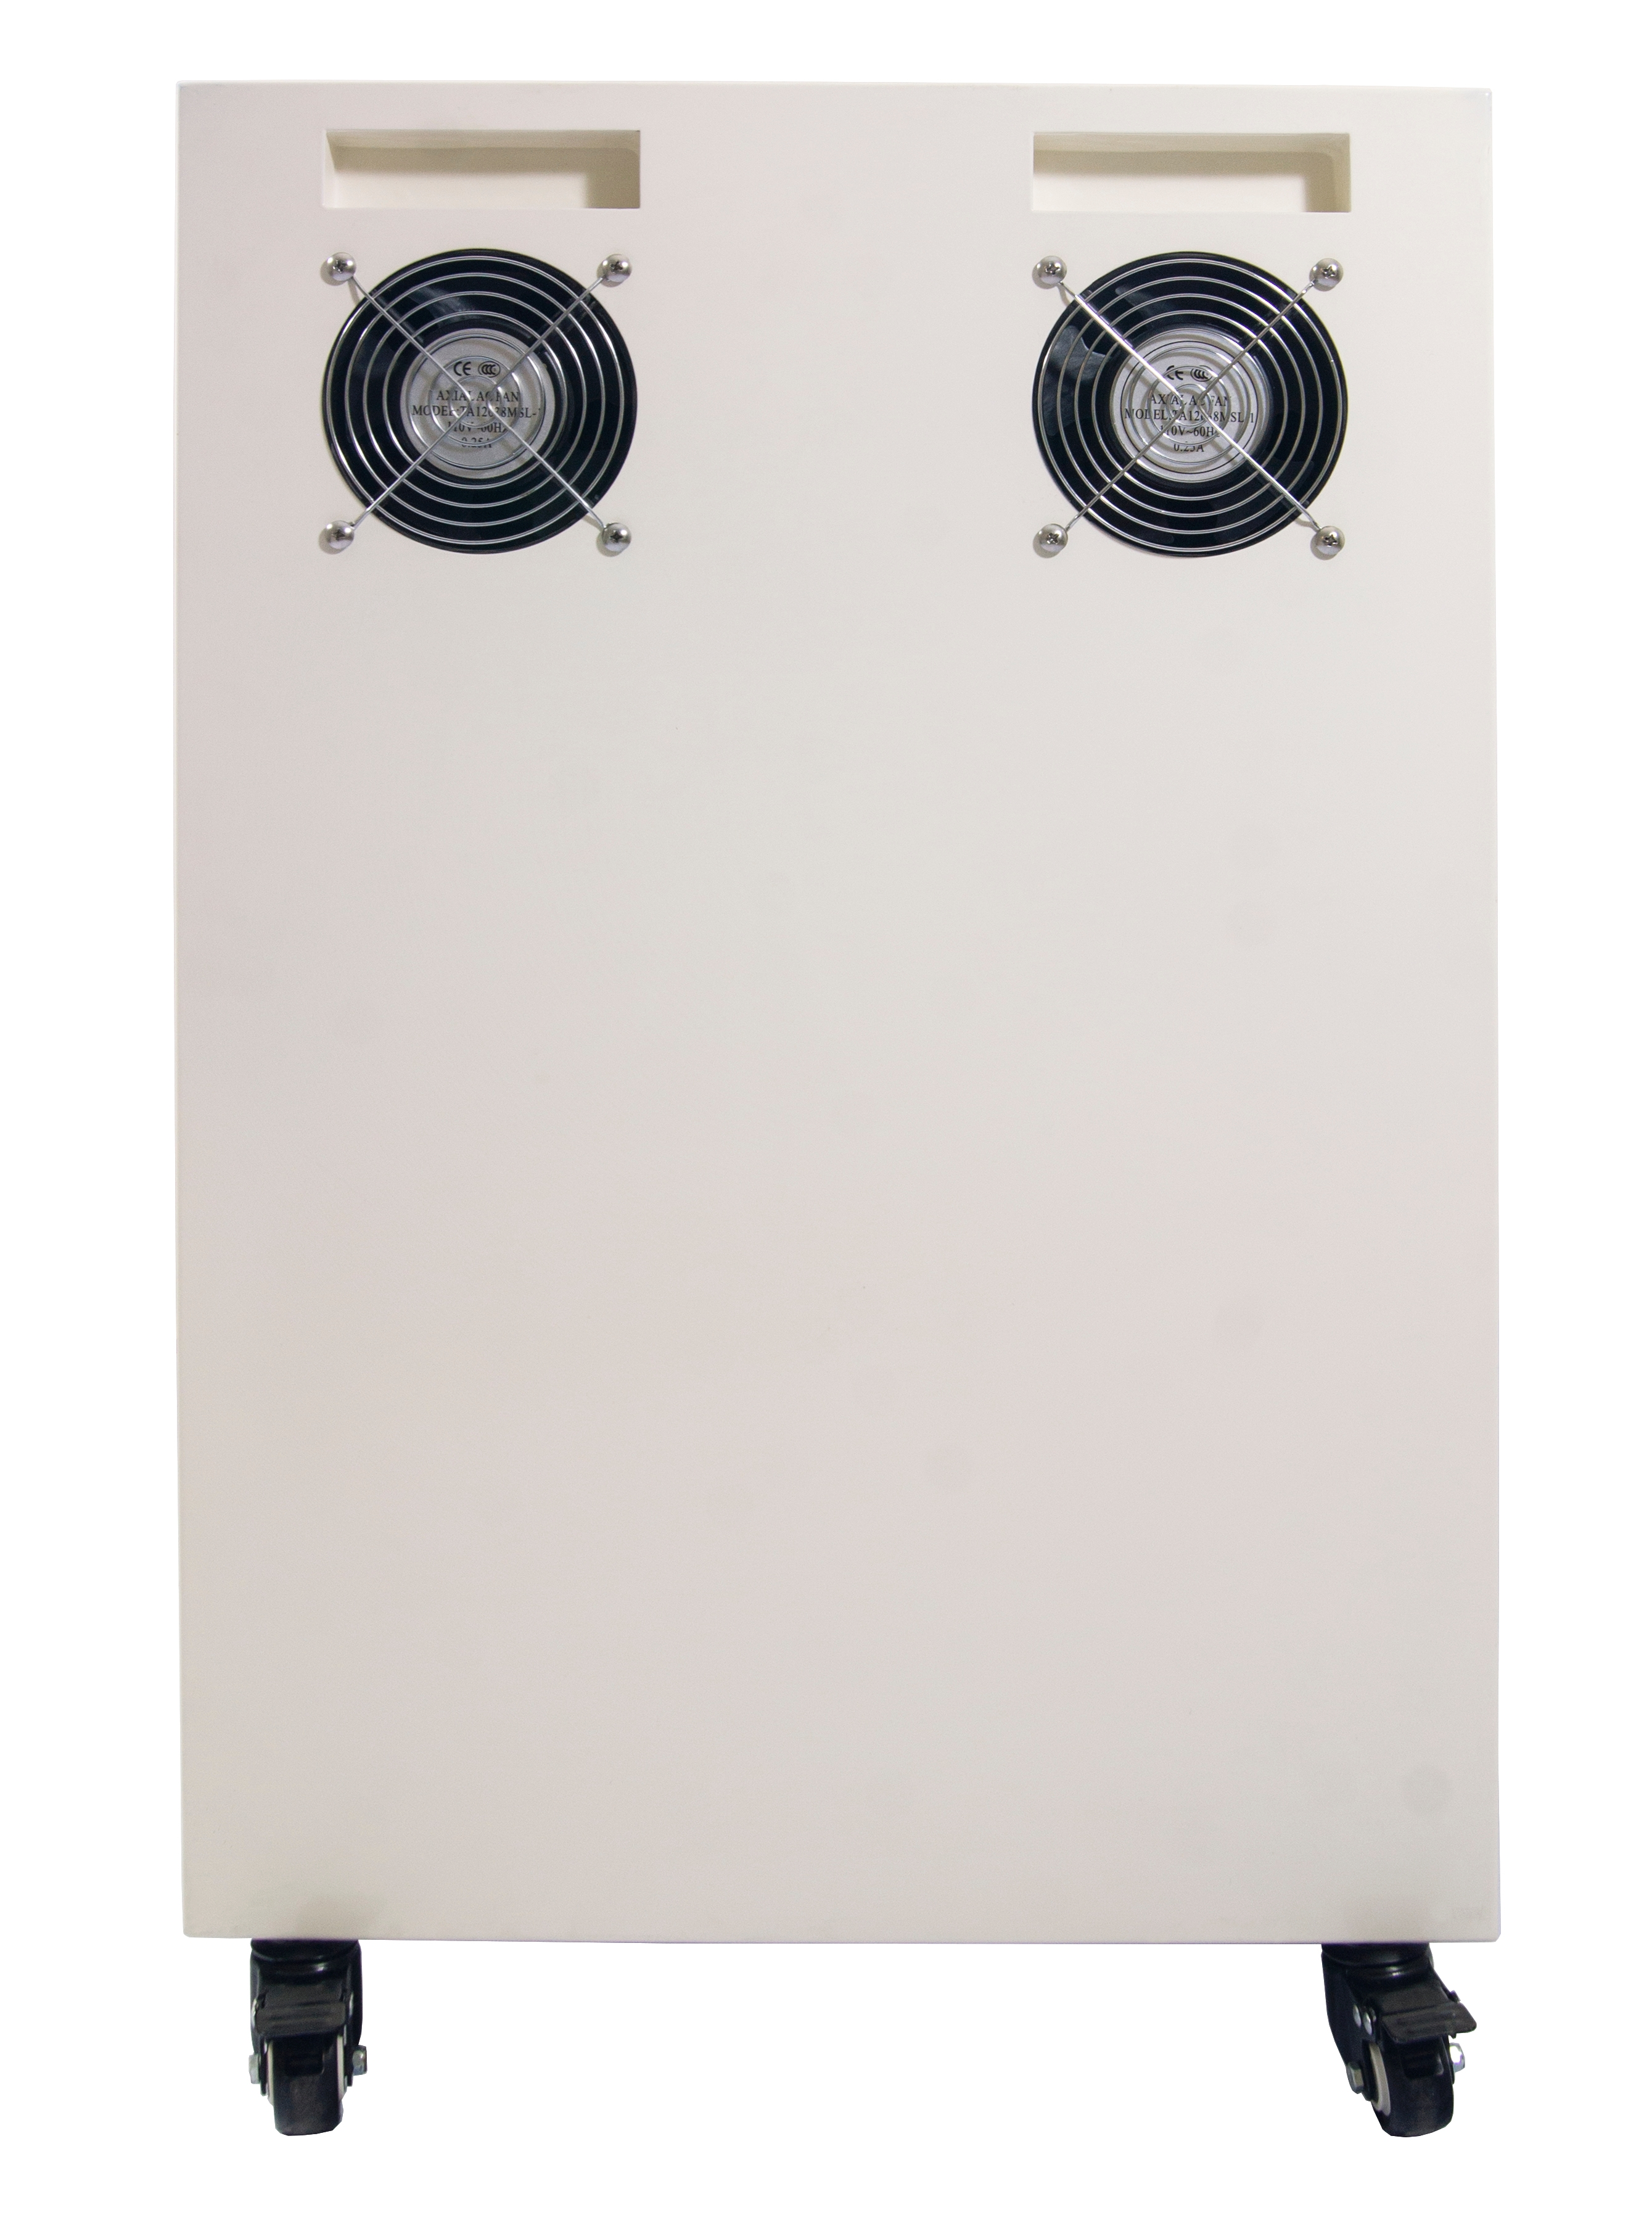 California Air Tools 10020SPC Ultra Quiet /& Oil-Free 2.0 Hp Steel Tank Air Compressor in Sound Proof Cabinet 10 gallon White